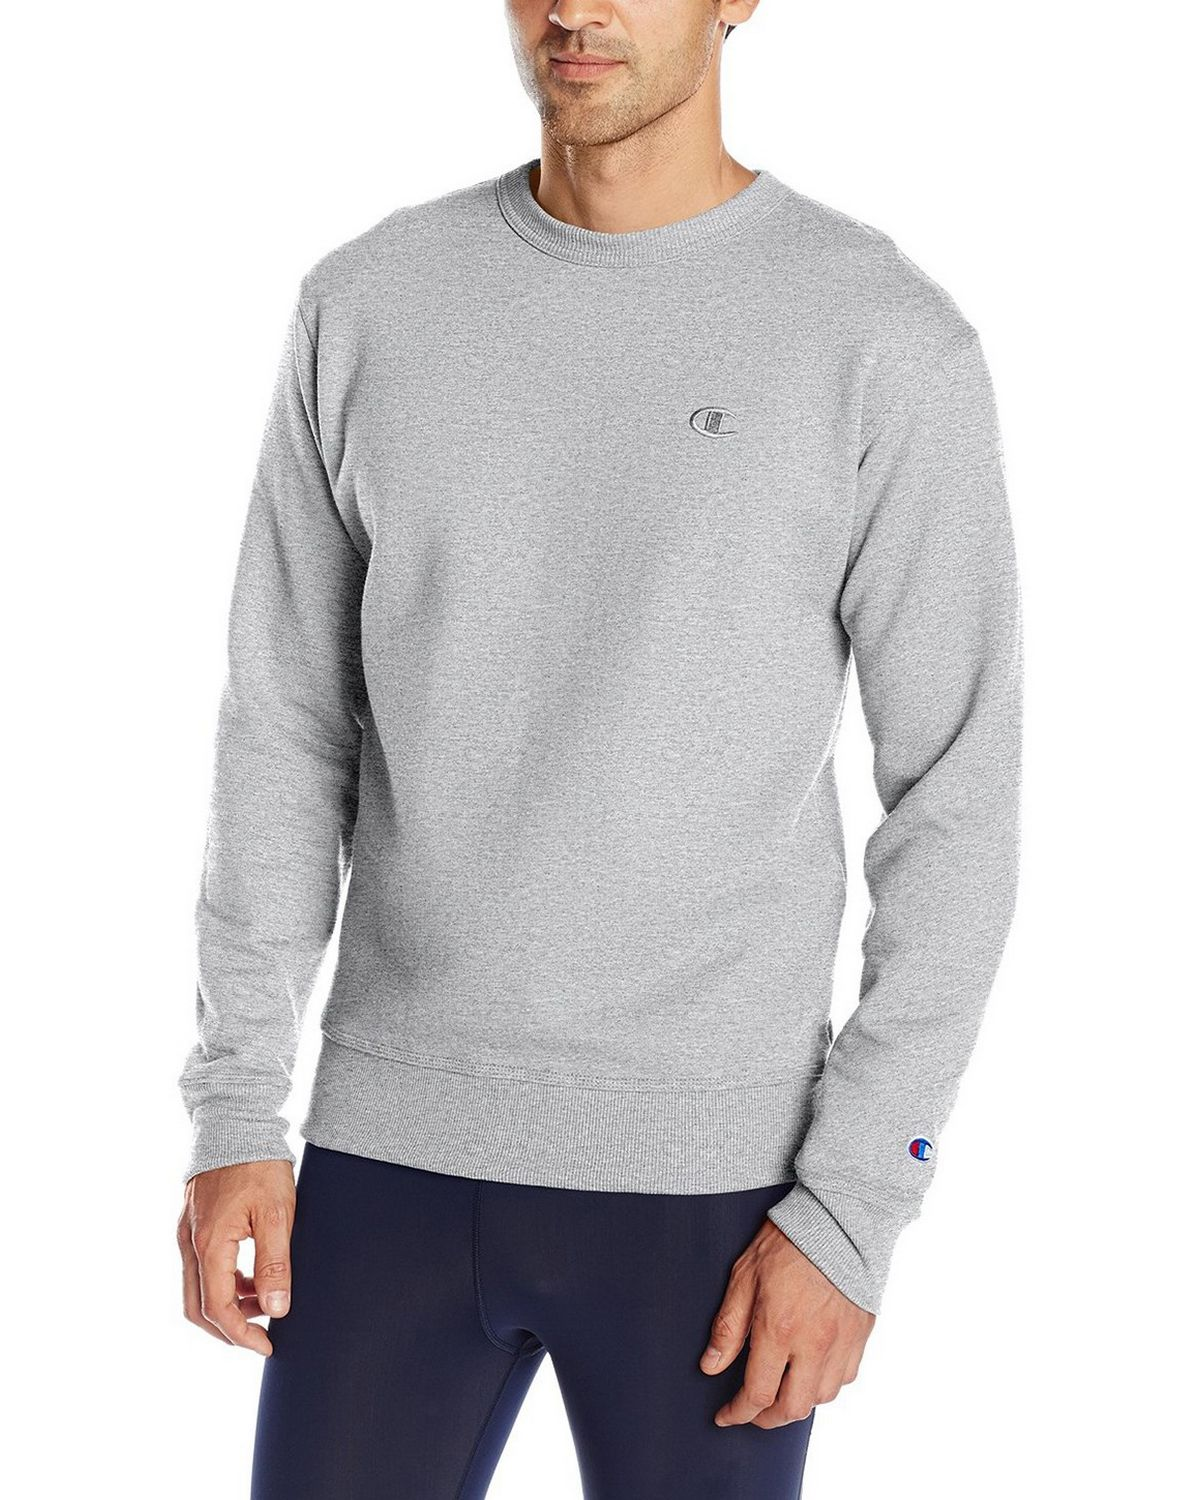 Champion S0888 Mens Fleece Pullover Crew - Oxford Grey - M S0888